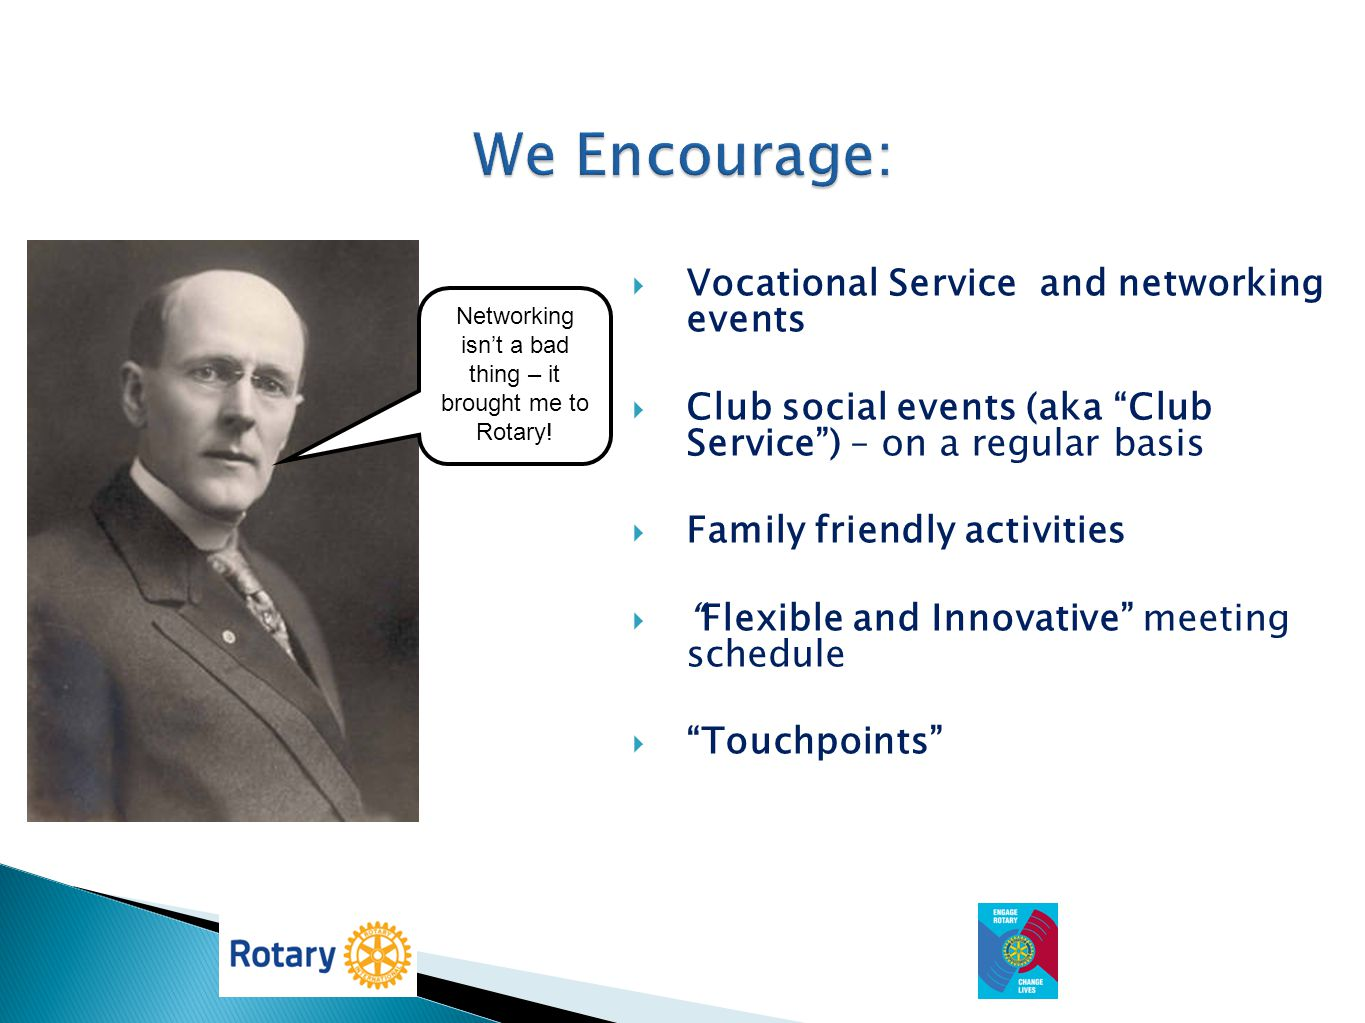 Networking isn't a bad thing – it brought me to Rotary!